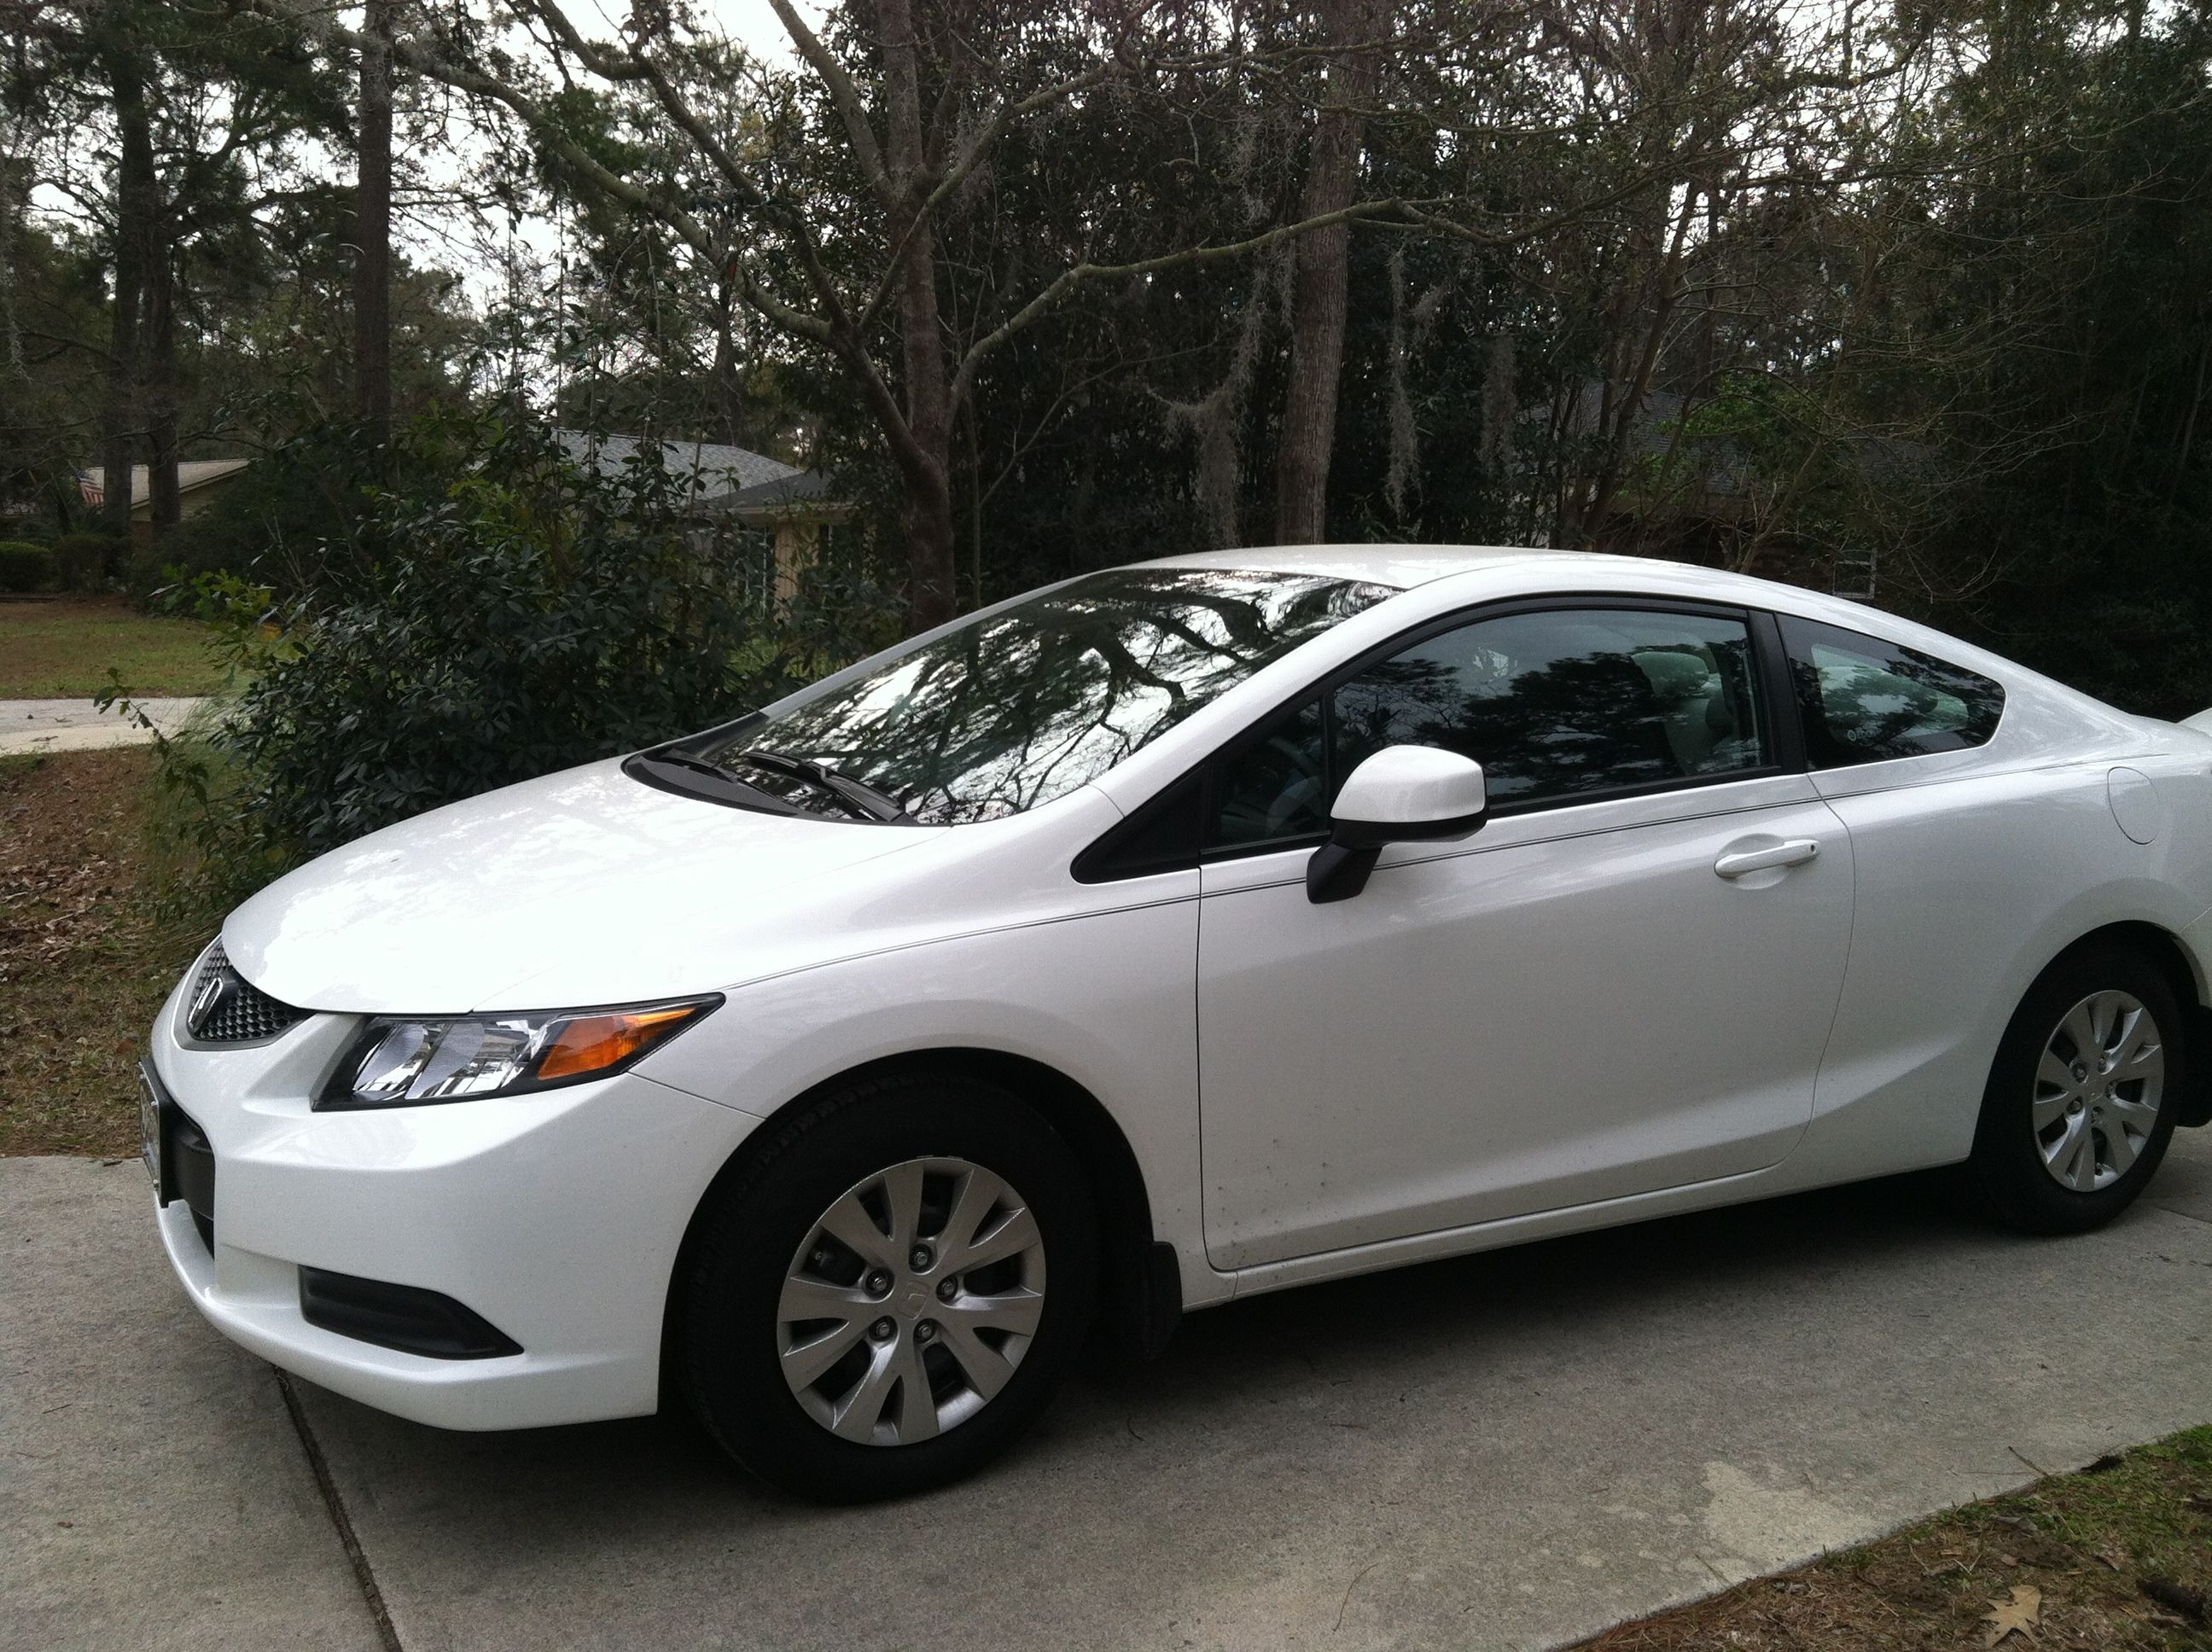 white 2012 honda civic two door autos pinterest honda civic honda and small cars. Black Bedroom Furniture Sets. Home Design Ideas